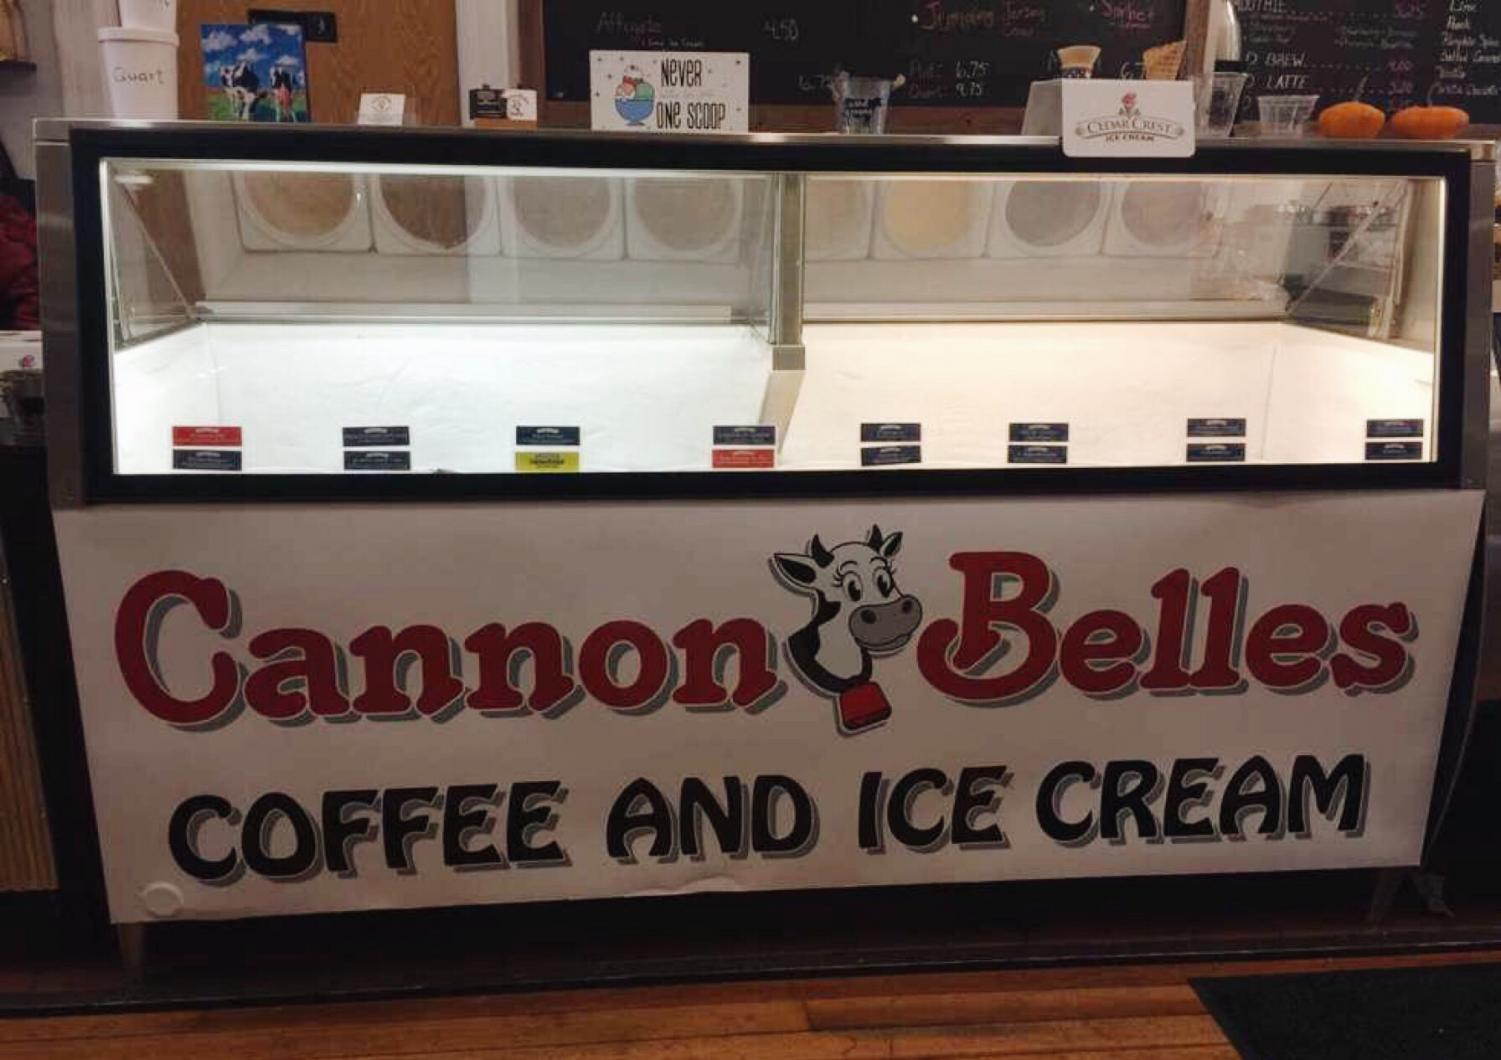 From plain vanilla to baked apple pie, Cannon Belles has a variety of Cedar Crest ice cream choices.